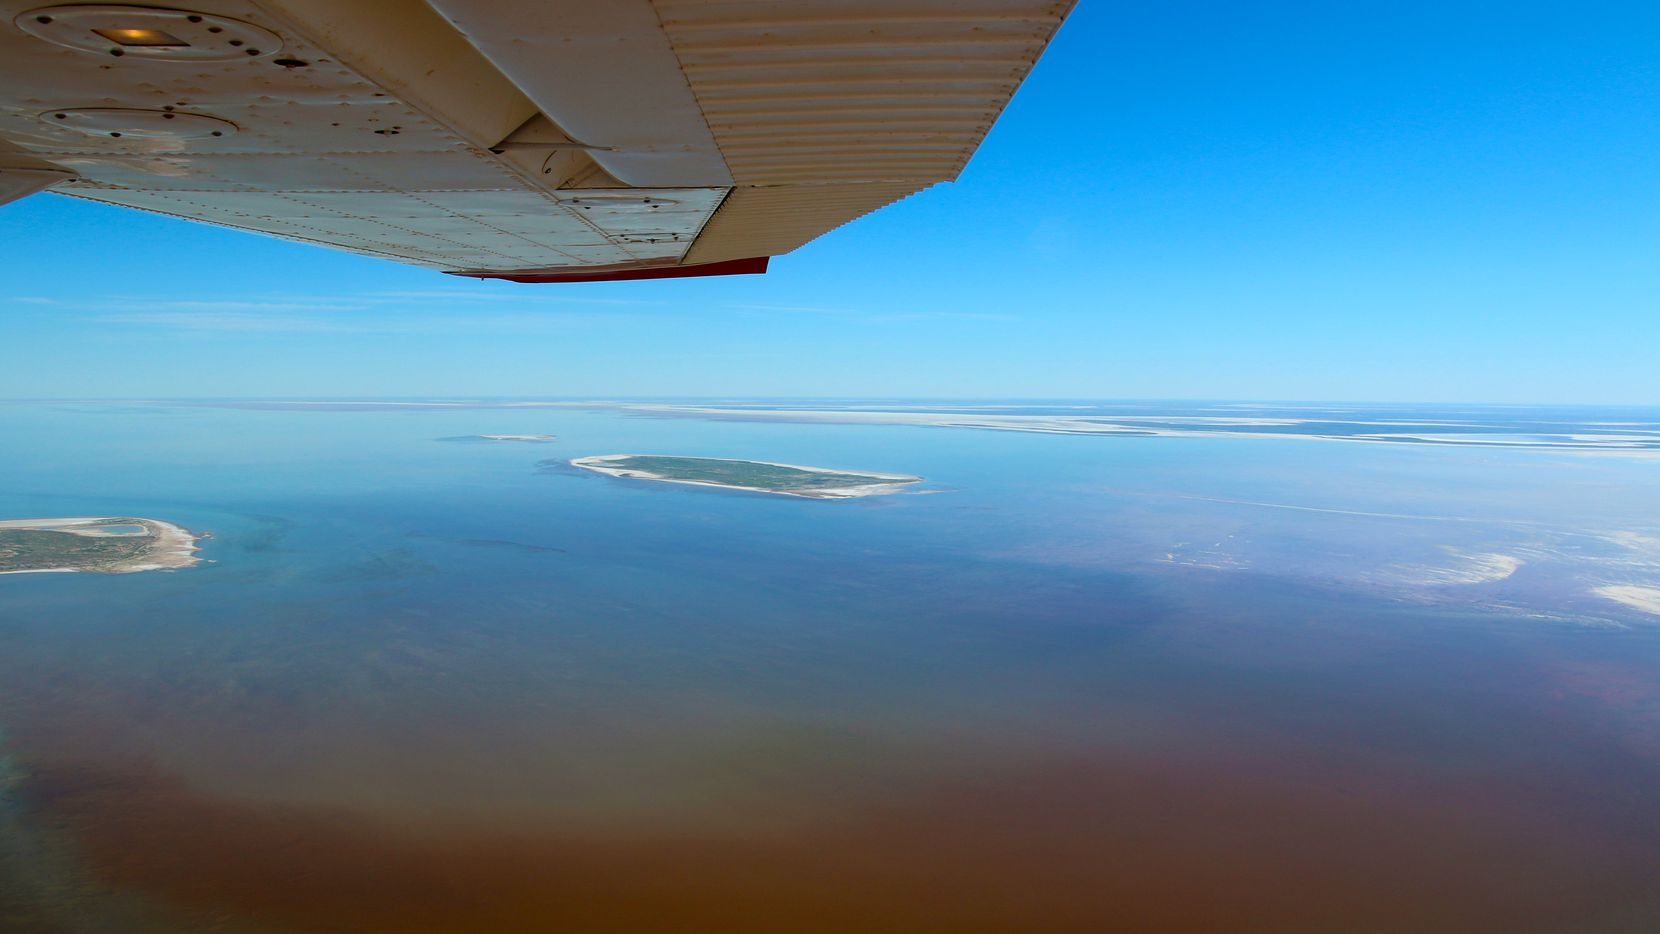 Kati Thanda-Lake Eyre in all its pastel-colored glory. The combination of water depth, ambient light and fish presence determines its ever-changing colors